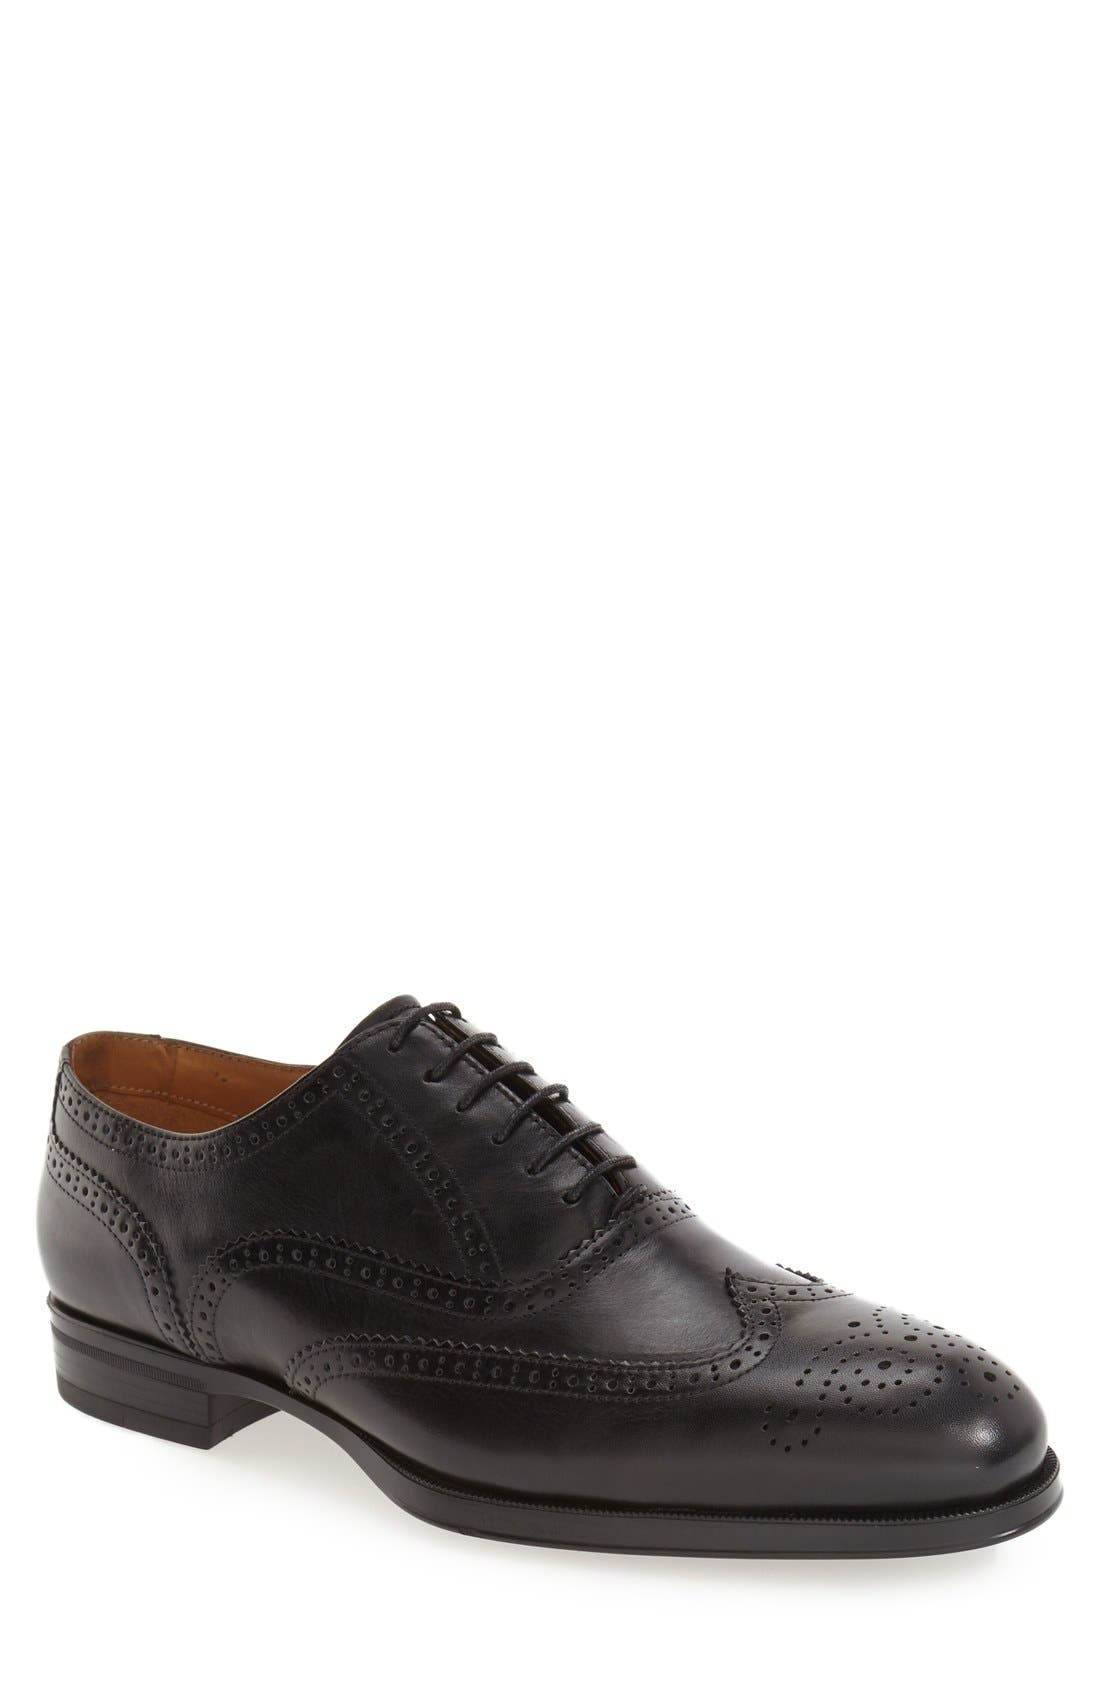 'Tallden' Wingtip,                         Main,                         color, Black Leather